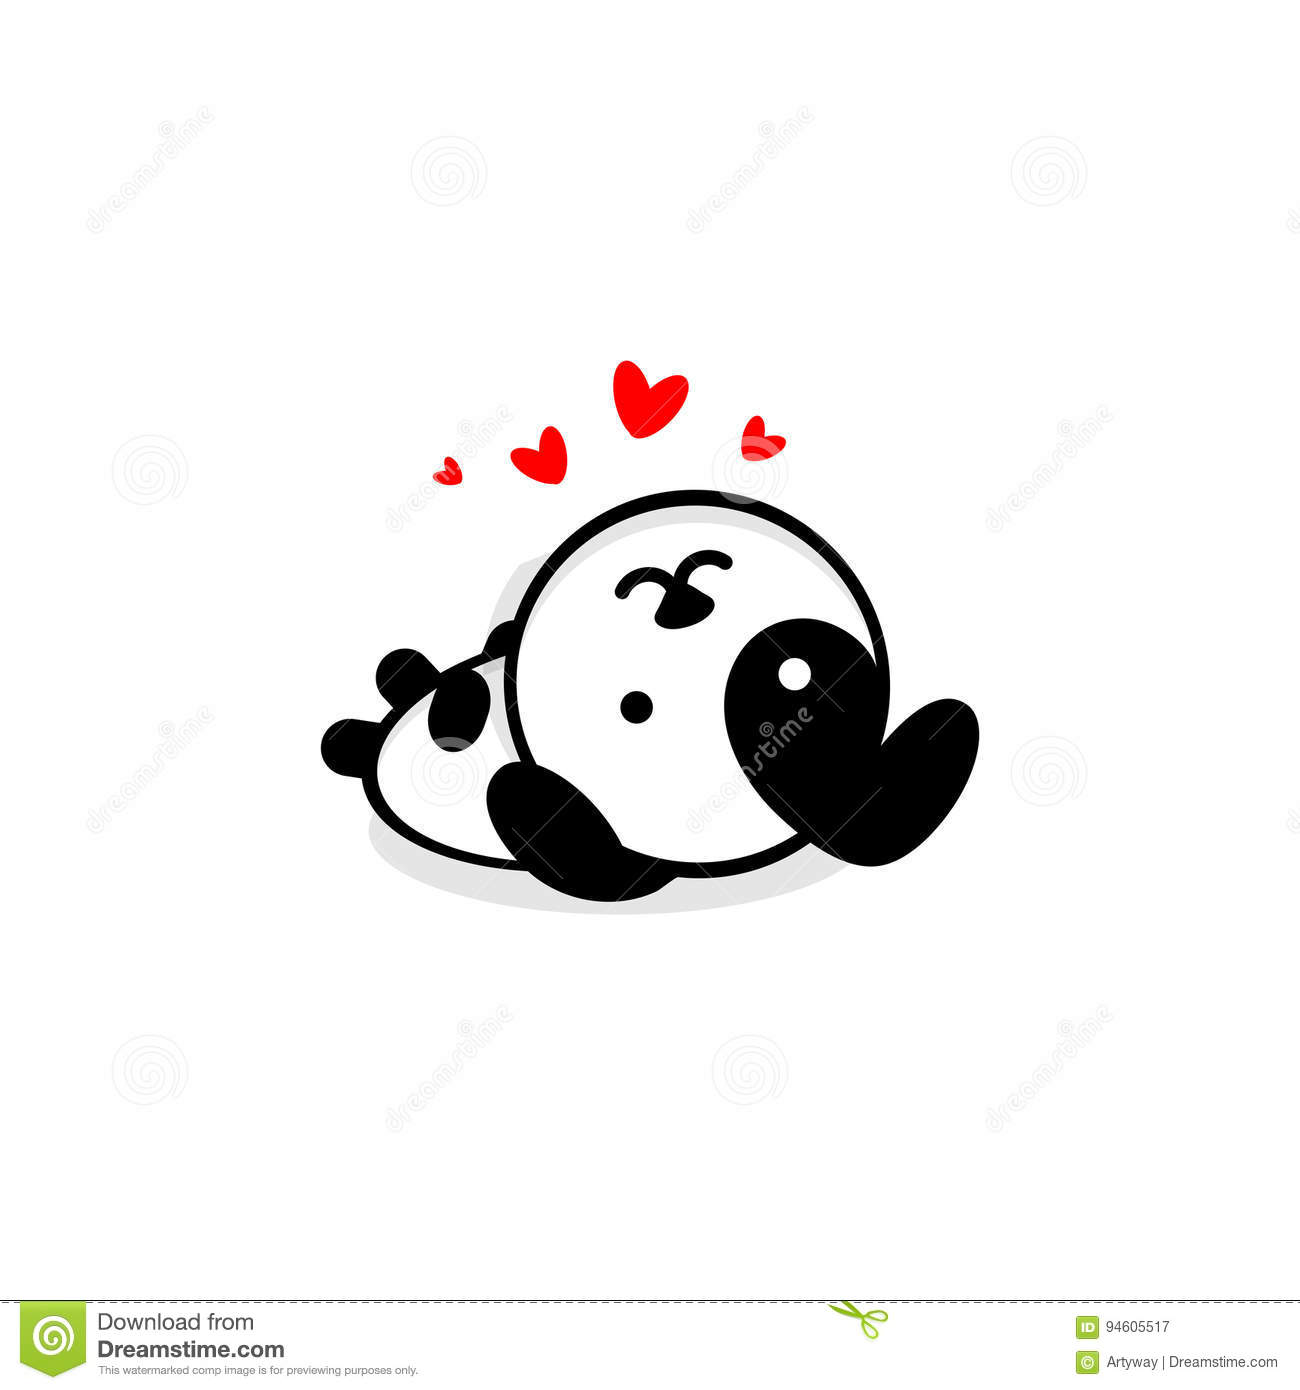 Cute Dog In Love And Rest Vector Illustration Baby Puppy Logo New Design Art Pet Black Color Sign Simple Image Stock Vector Illustration Of Cartoon Happy 94605517